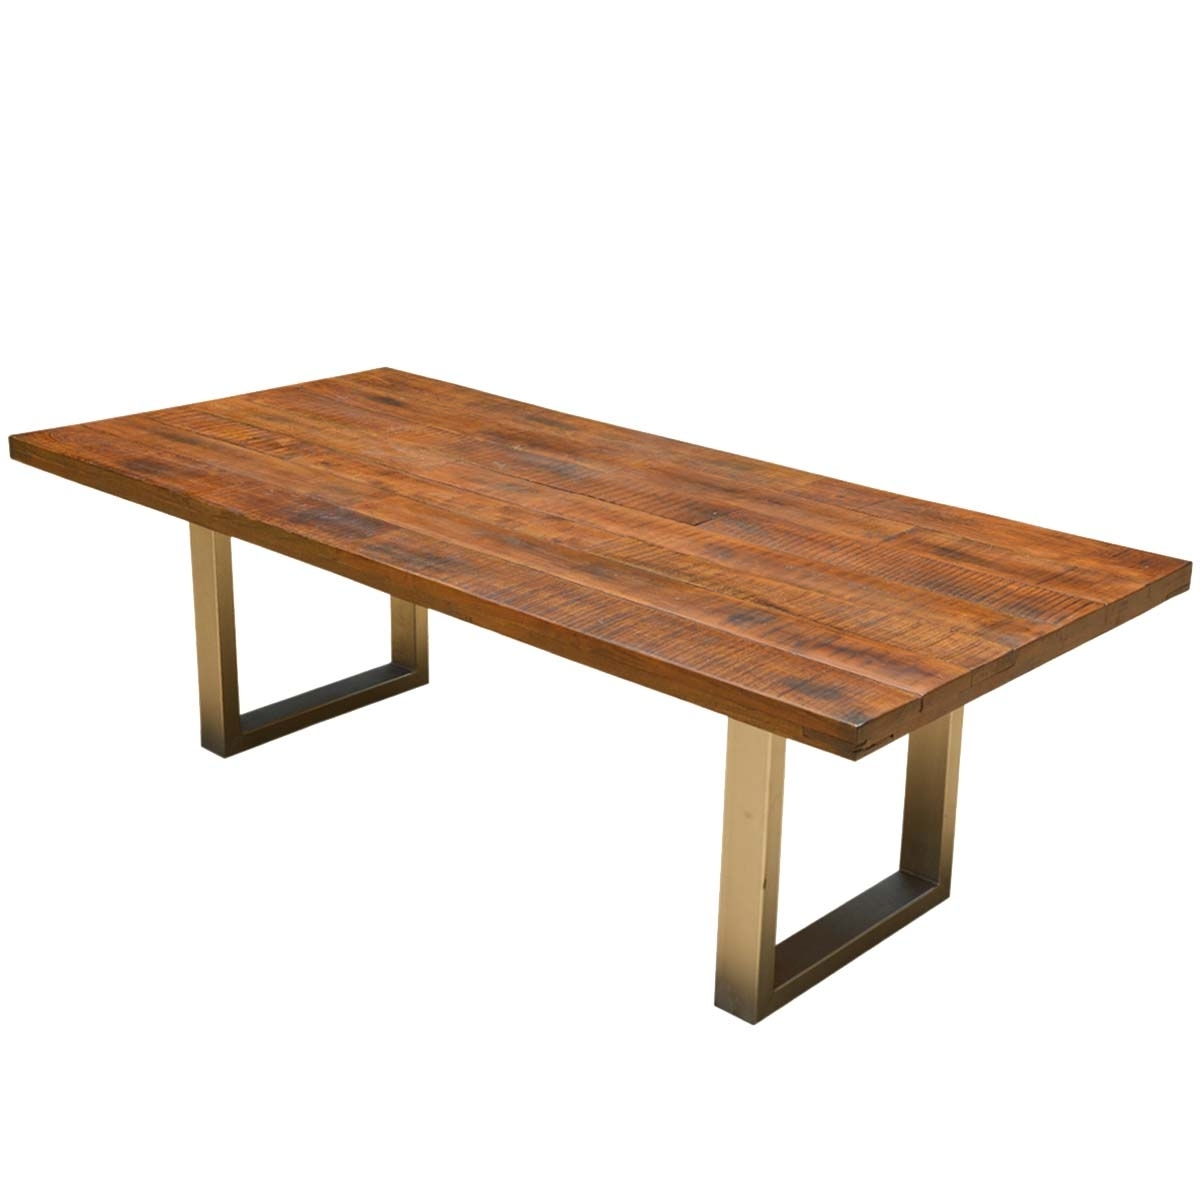 2017 Acacia Lyon Large Contemporary Rustic Solid Acacia Wood Dining Table Throughout Acacia Dining Tables (View 4 of 25)